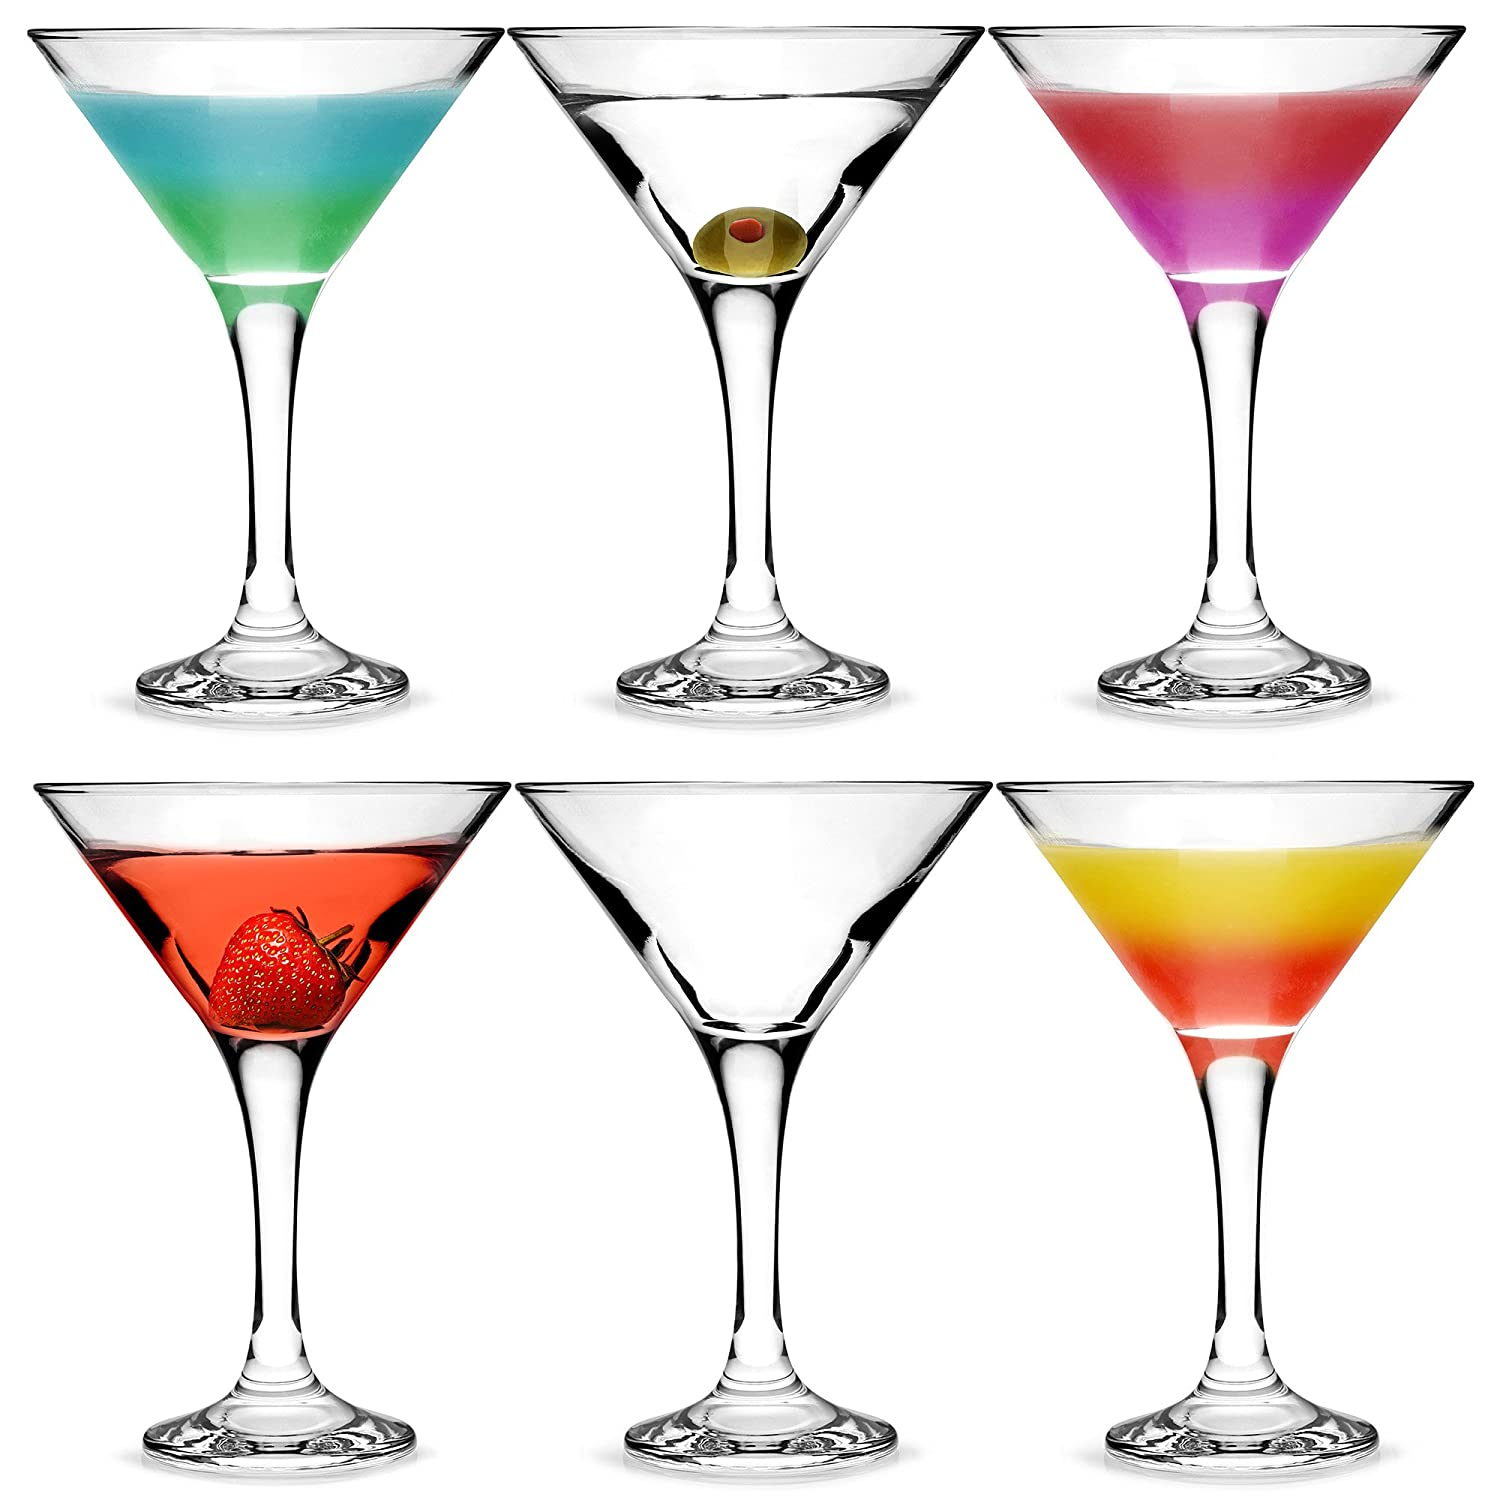 bar@drinkstuff City Martini Cocktail Glasses 175ml - Set of 6 - Gift Boxed Classic V Shaped Martini Glasses for Serving Cocktails